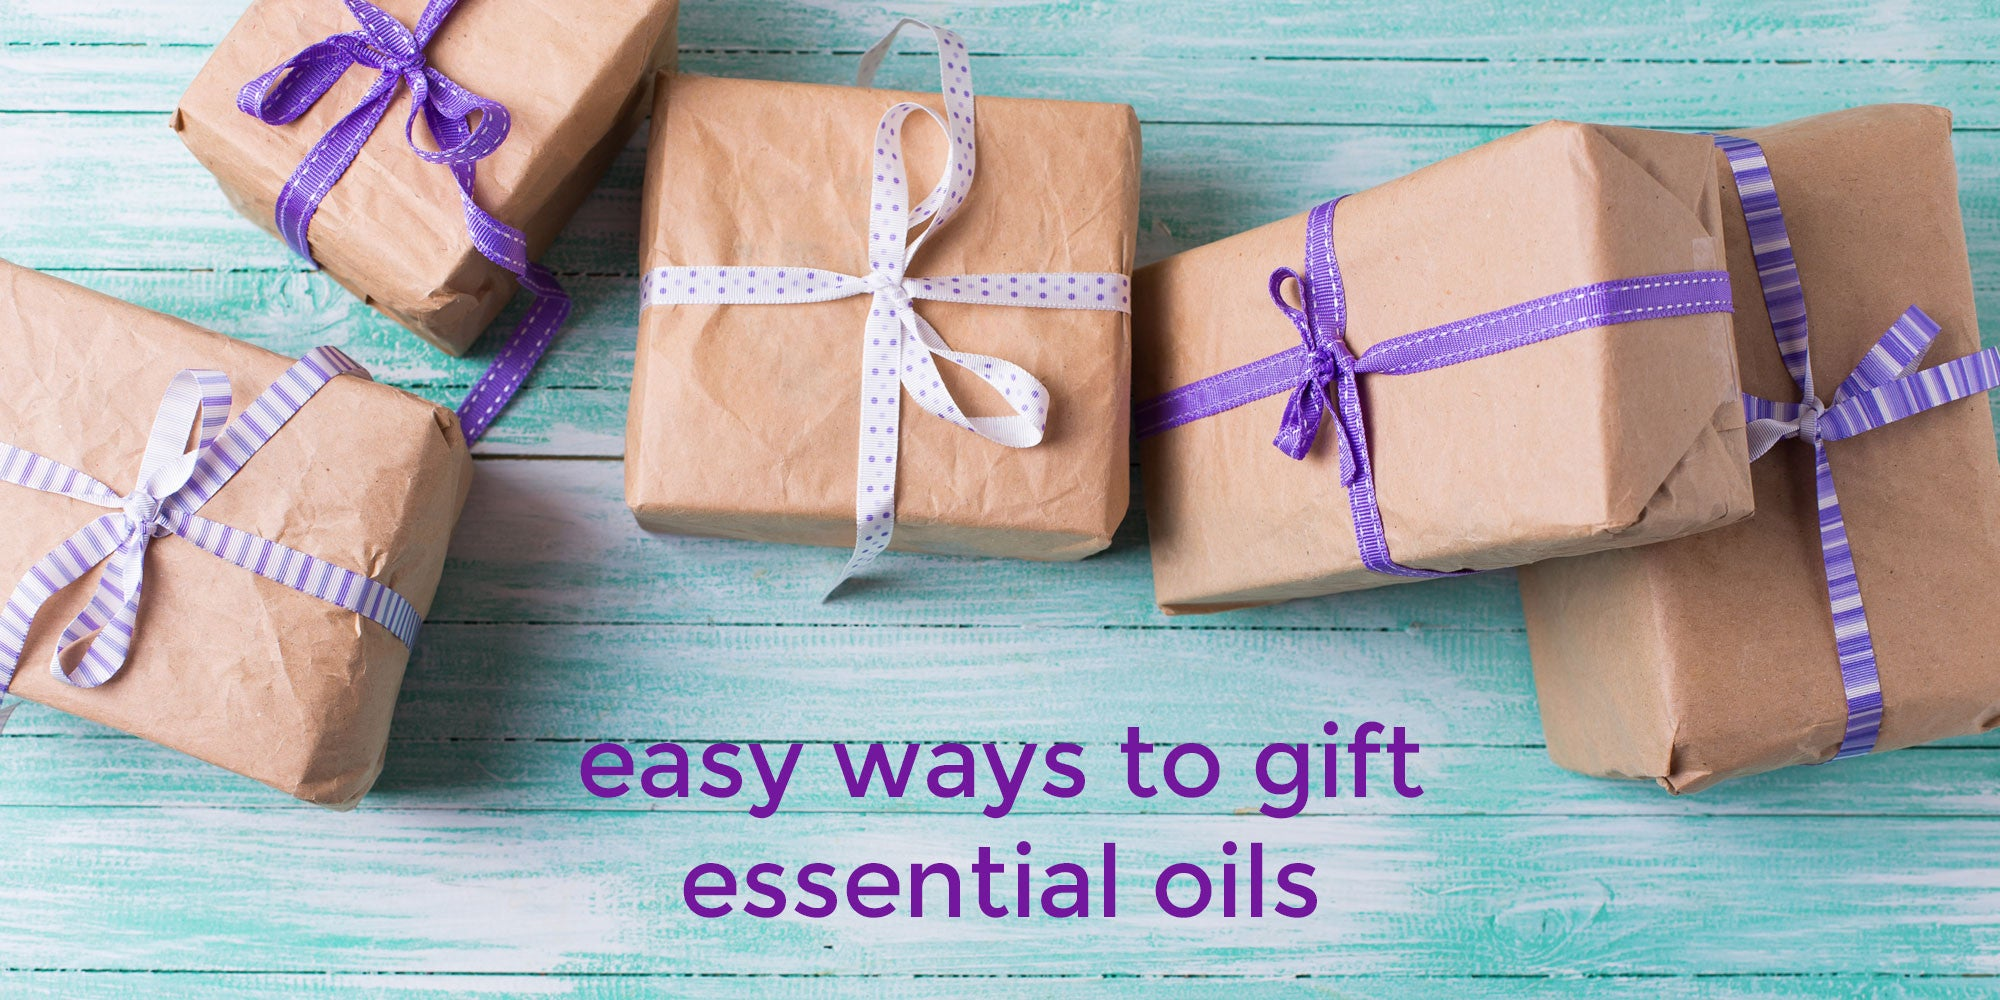 Easy Ways to Gift Essential Oils